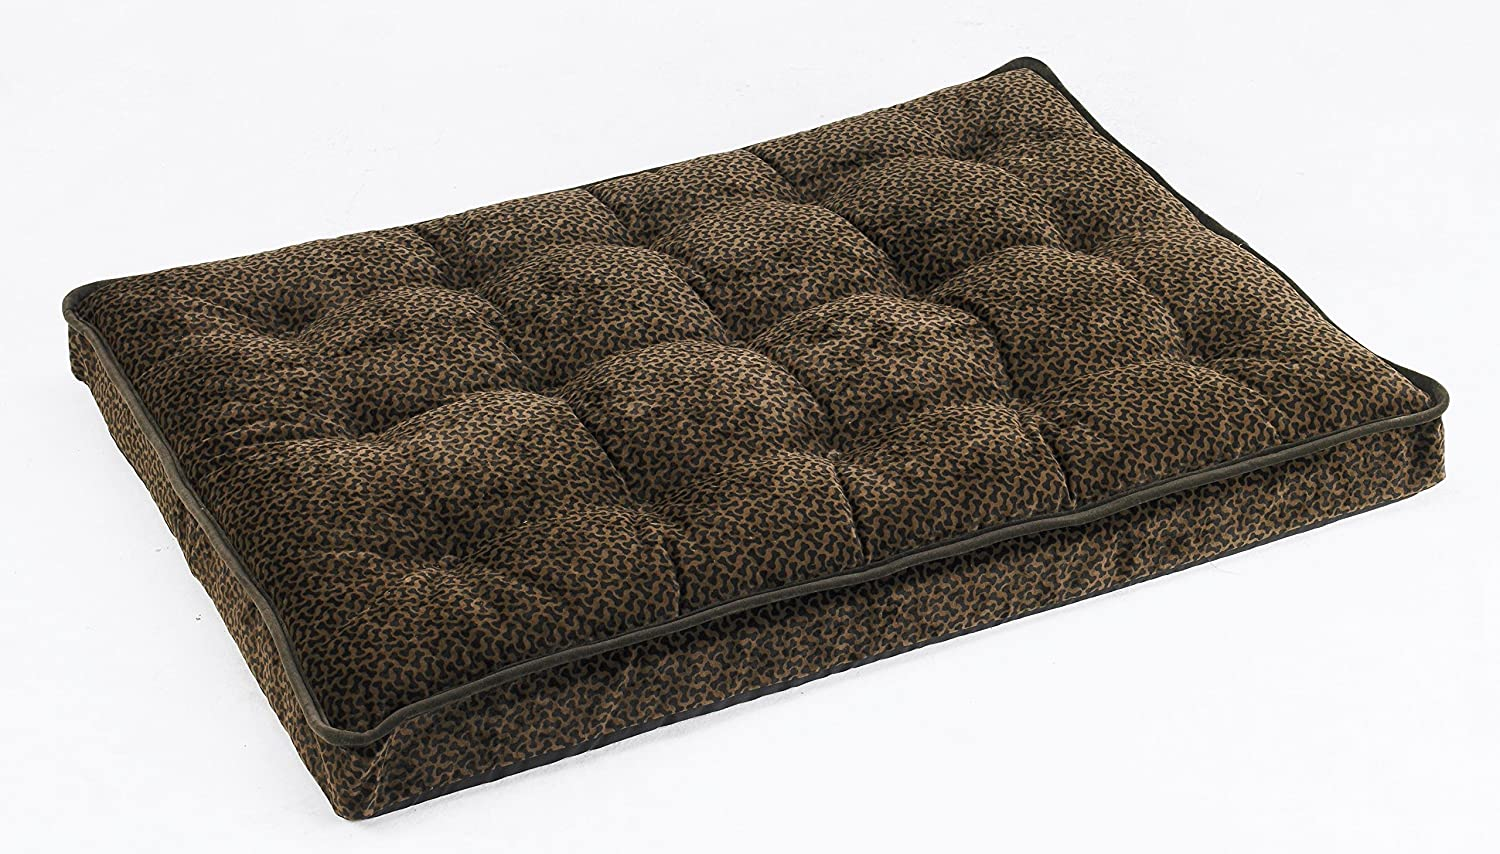 Bowsers Luxury Crate Mattress Dog Bed, Large, Chocolate Bones